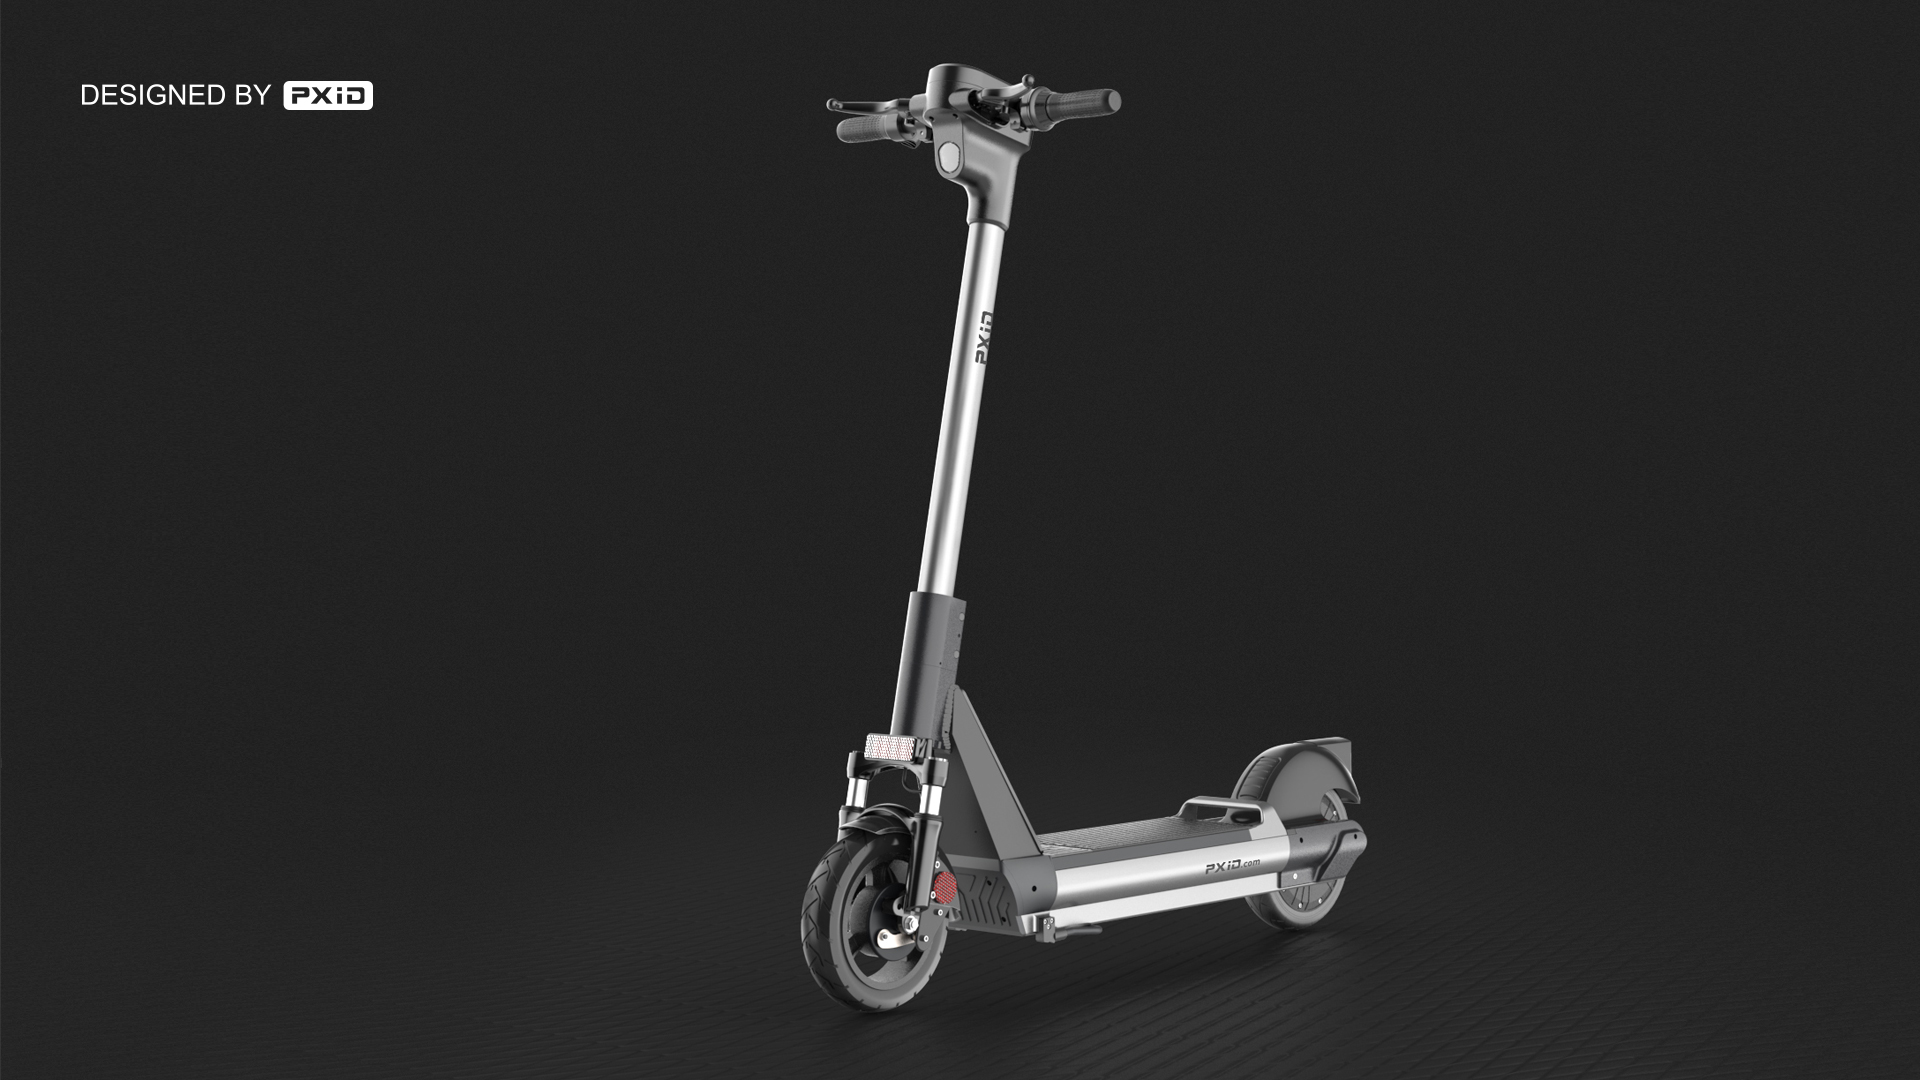 2020 PXID new escooter for sharing rental electric scooter with IOT device